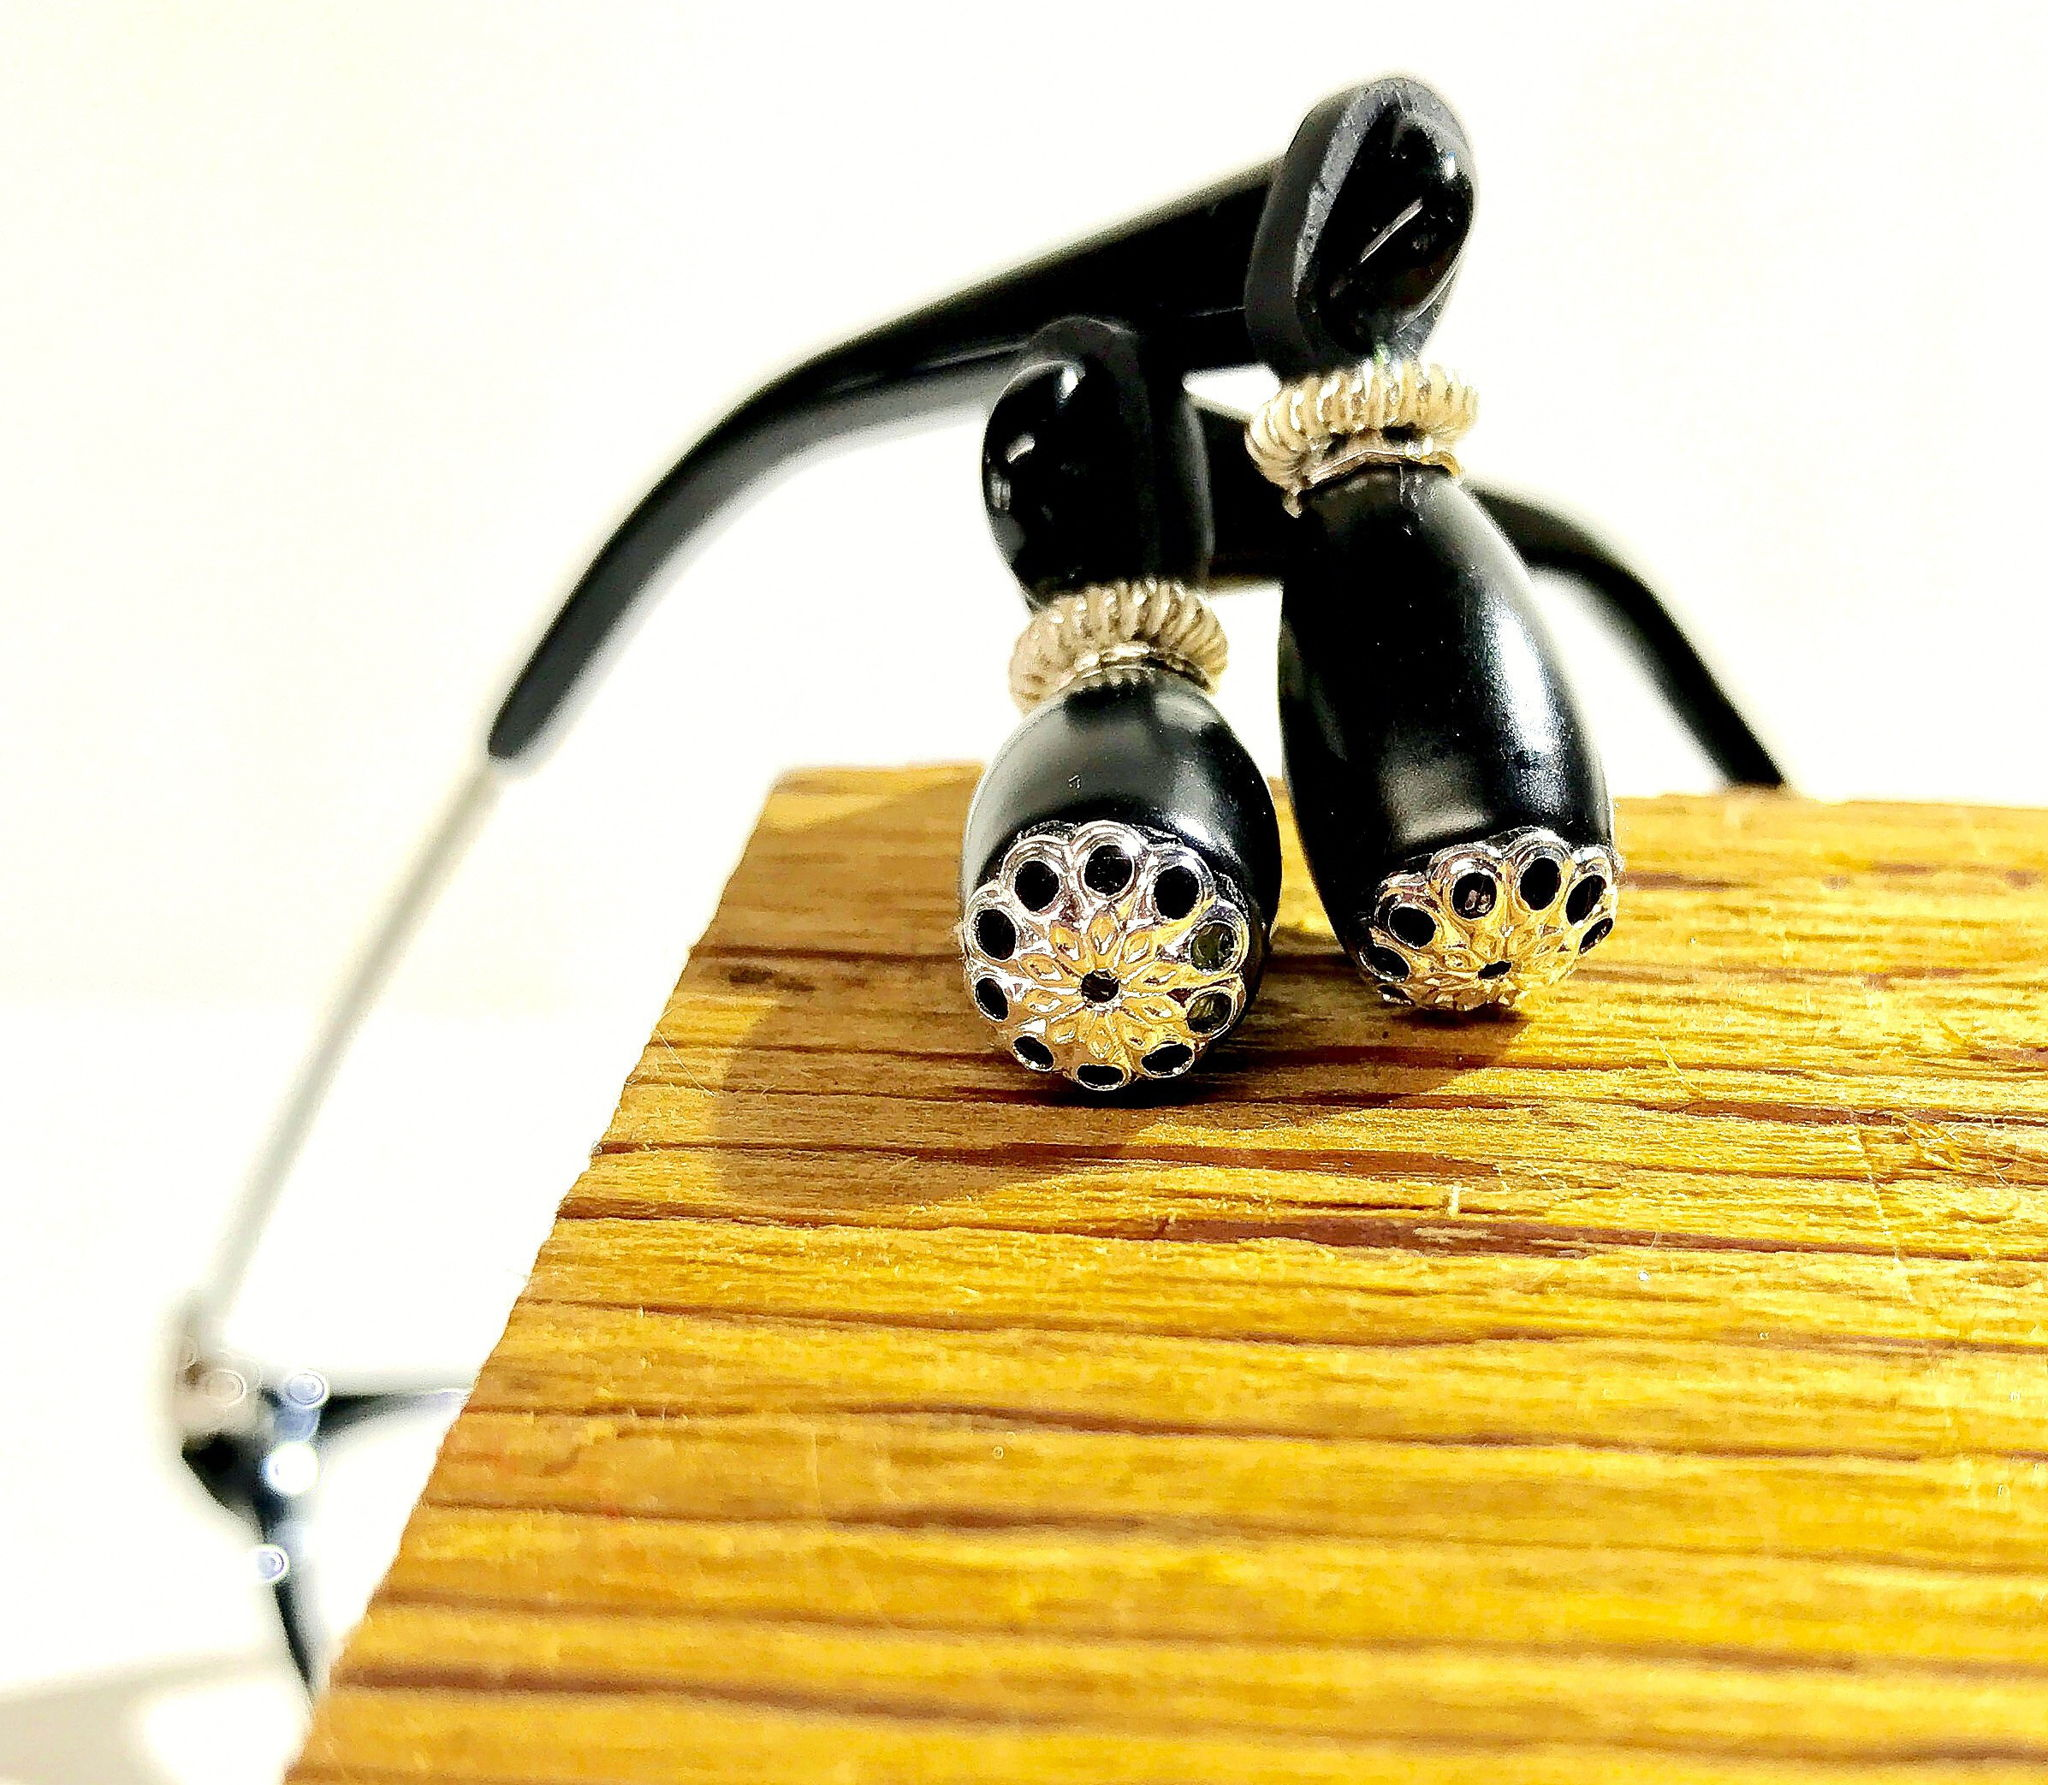 Eyeglass jewelry prevents eyeglass pain, pressure, nose dents, makes glasses comfortable